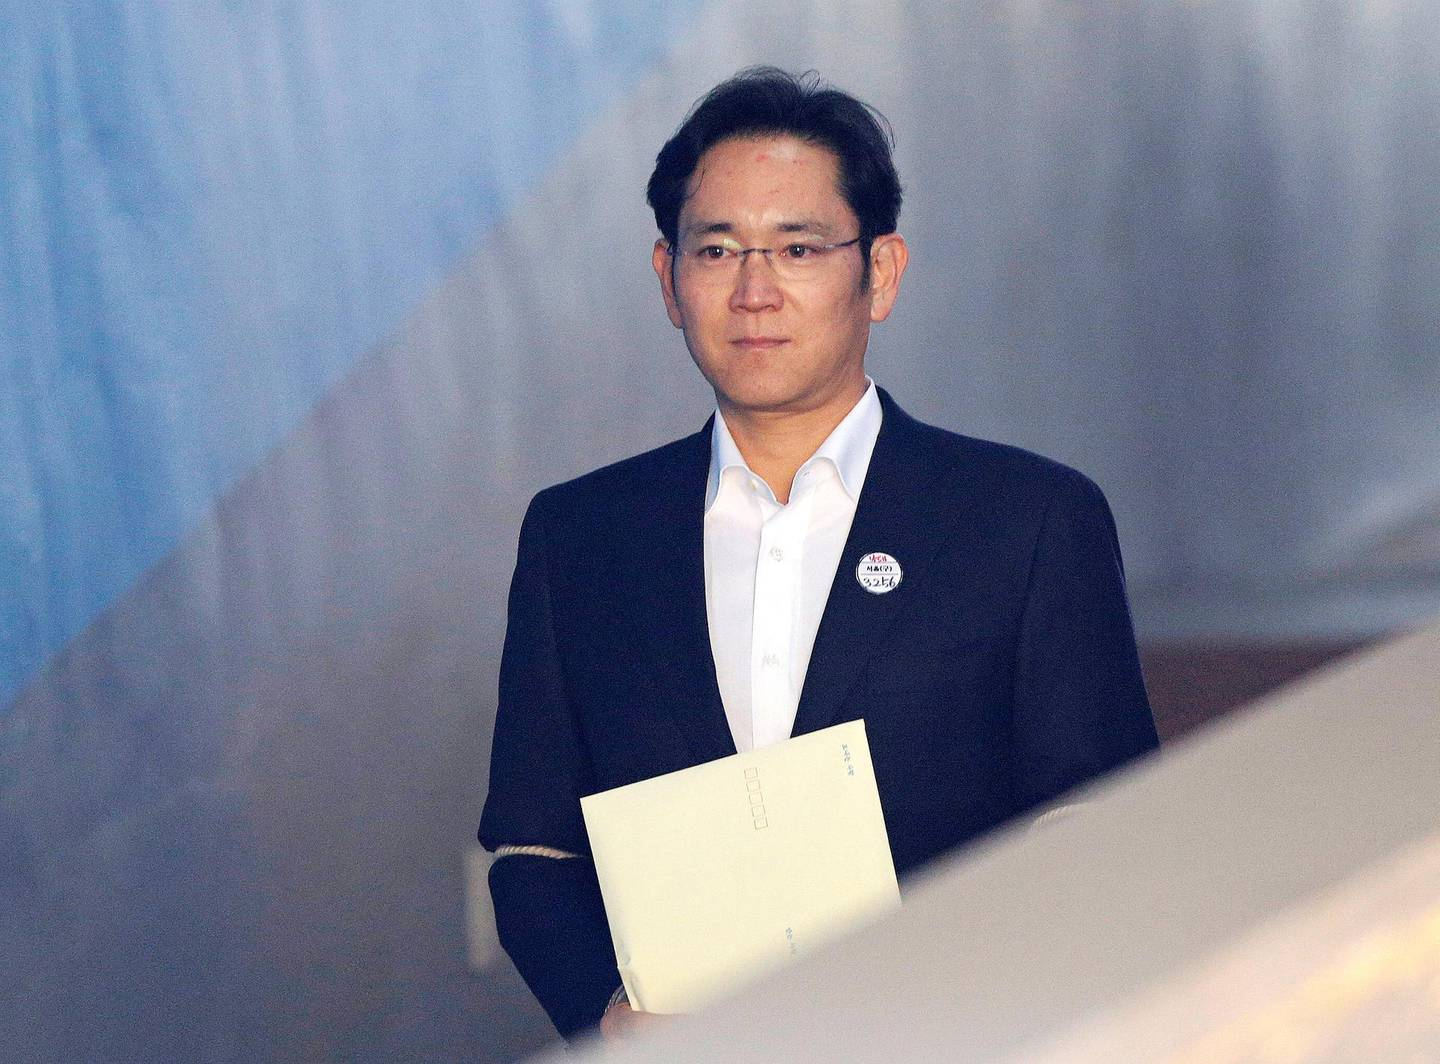 Jay Y. Lee, co-vice chairman of Samsung Electronics Co., arrives at the High Court in Seoul, South Korea, on Monday, Feb. 5, 2018. The High Court in Seoul is expected to rule on the appeal by Samsung's de facto leader Lee on his five-year prison term for bribery. Photographer: Ahn Young-joon/Pool via Bloomberg